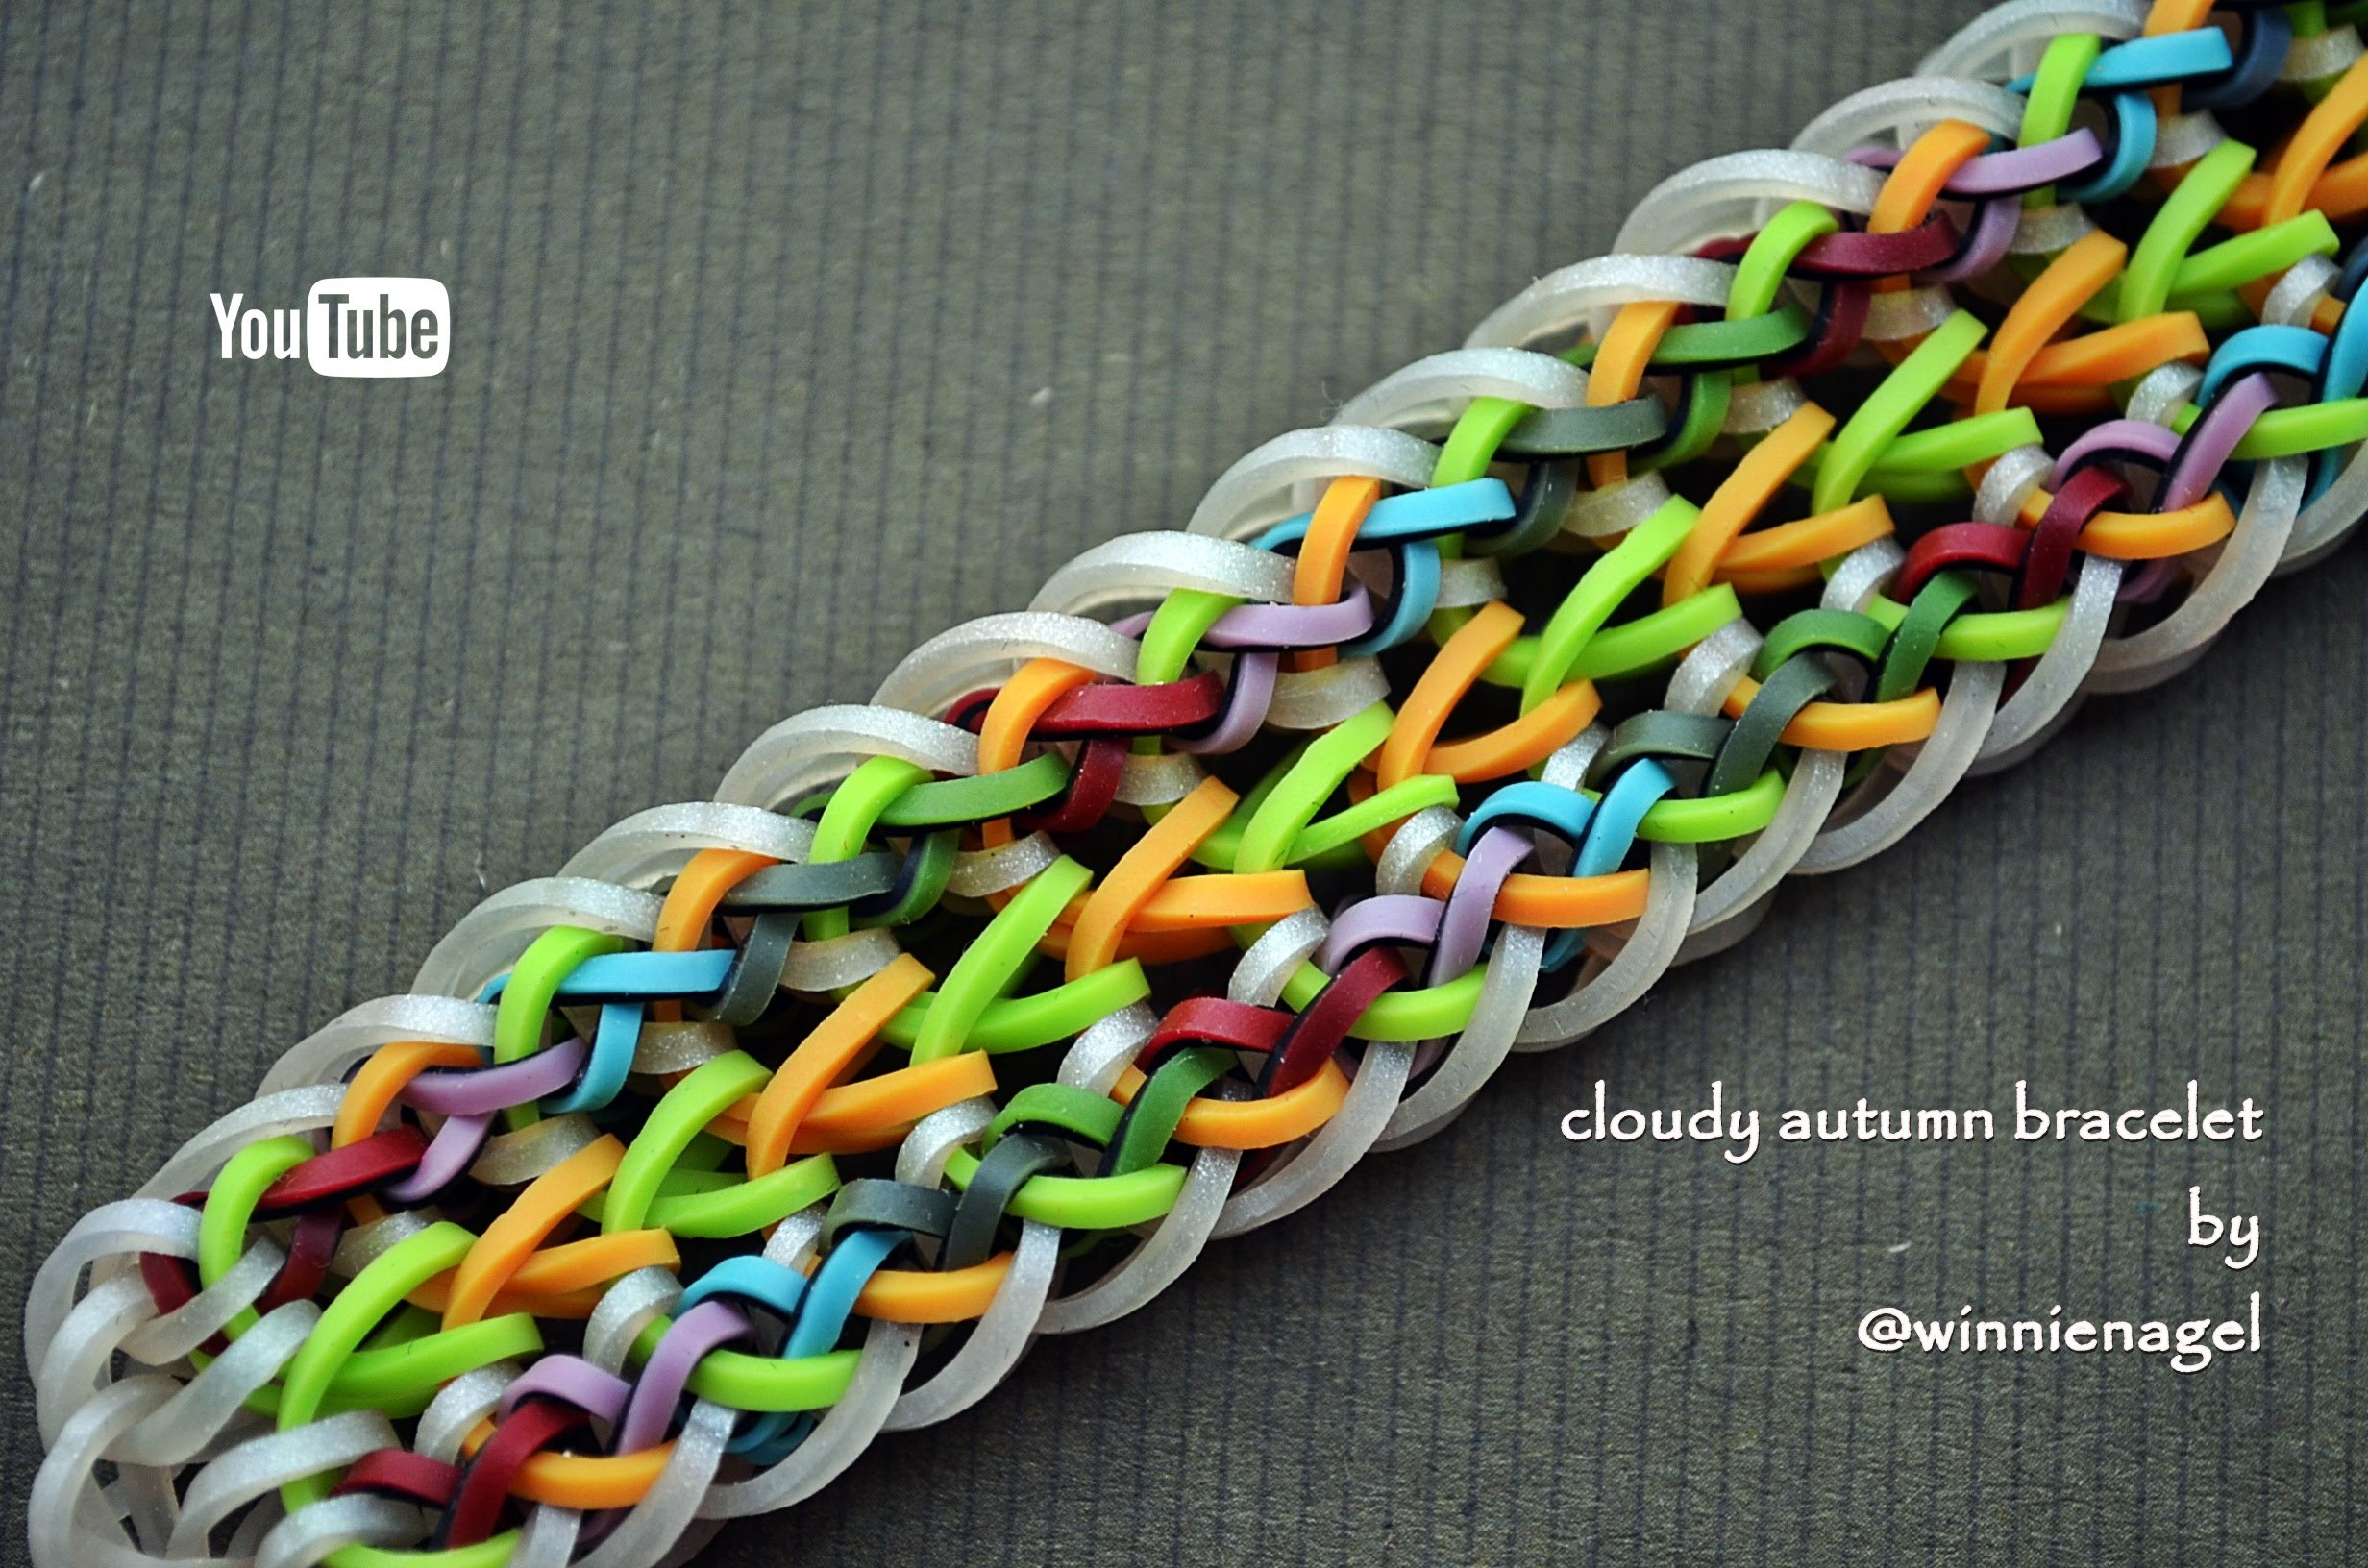 CLOUDY AUTUMN BRACELET HOOK ONLY DESIGN TUTORIAL